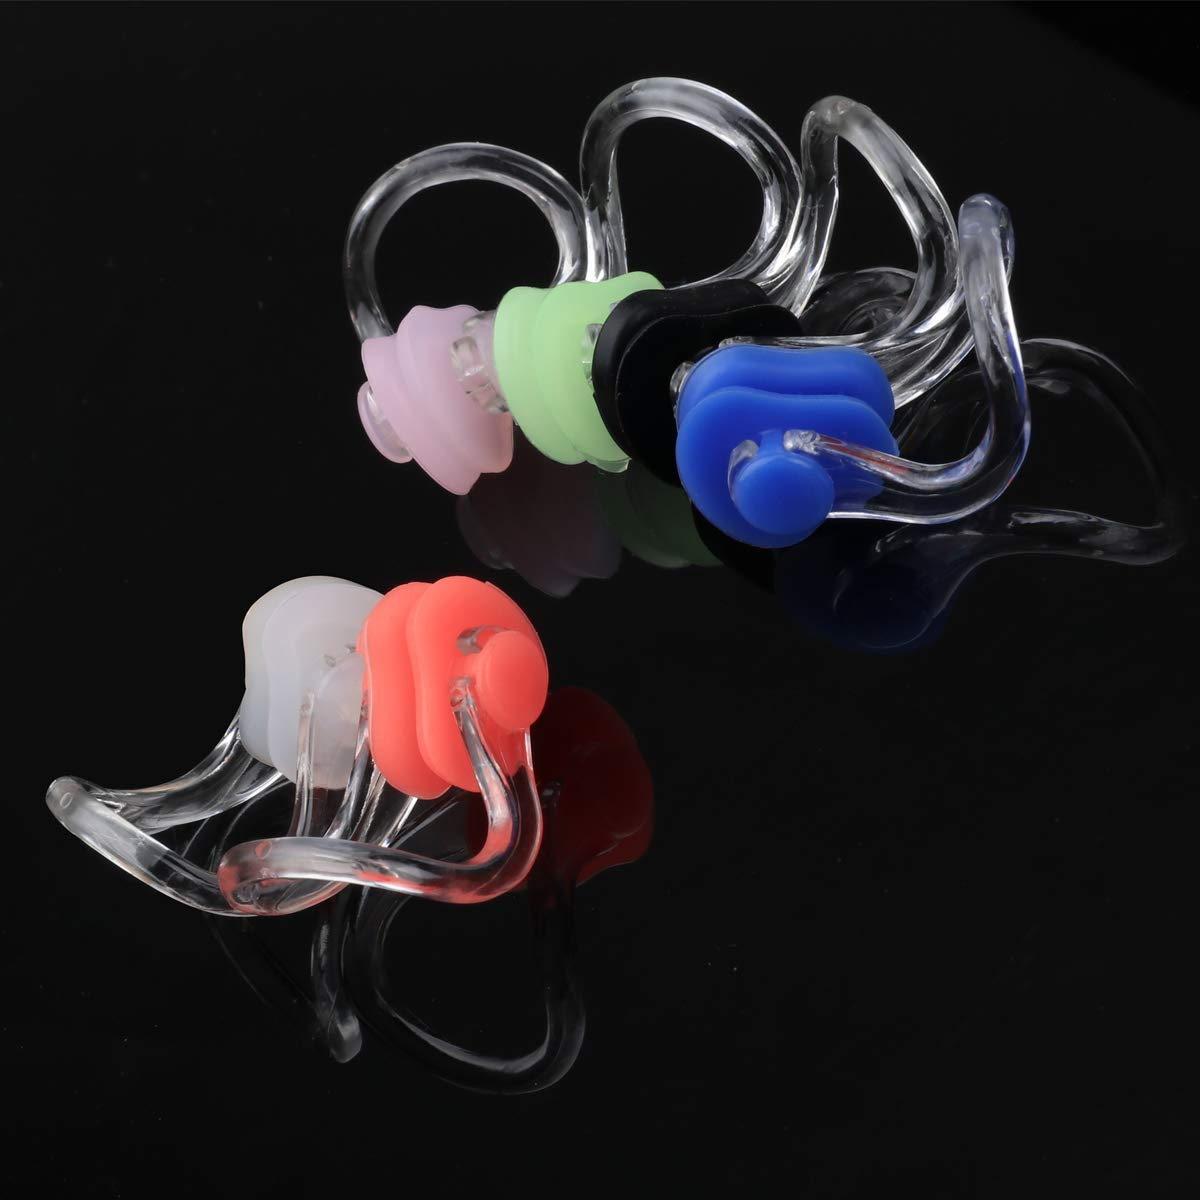 AOPRIE Nose Clip 12 Pcs Waterproof Silica Gel Swimming Nose Clips Soft Comfort Nose Protector for Adults & Kids 6 Colors by AOPRIE